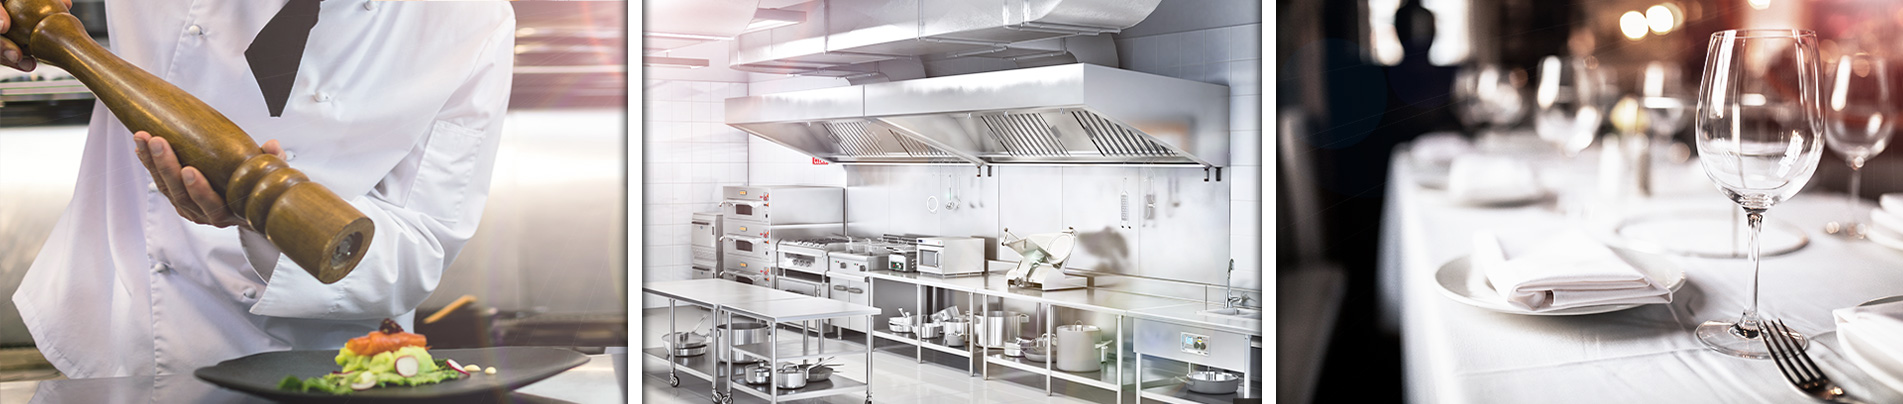 Central Food Equipment displaying a well-stock stainless steel kitchen, dinnerware and a chef preparing a salad.